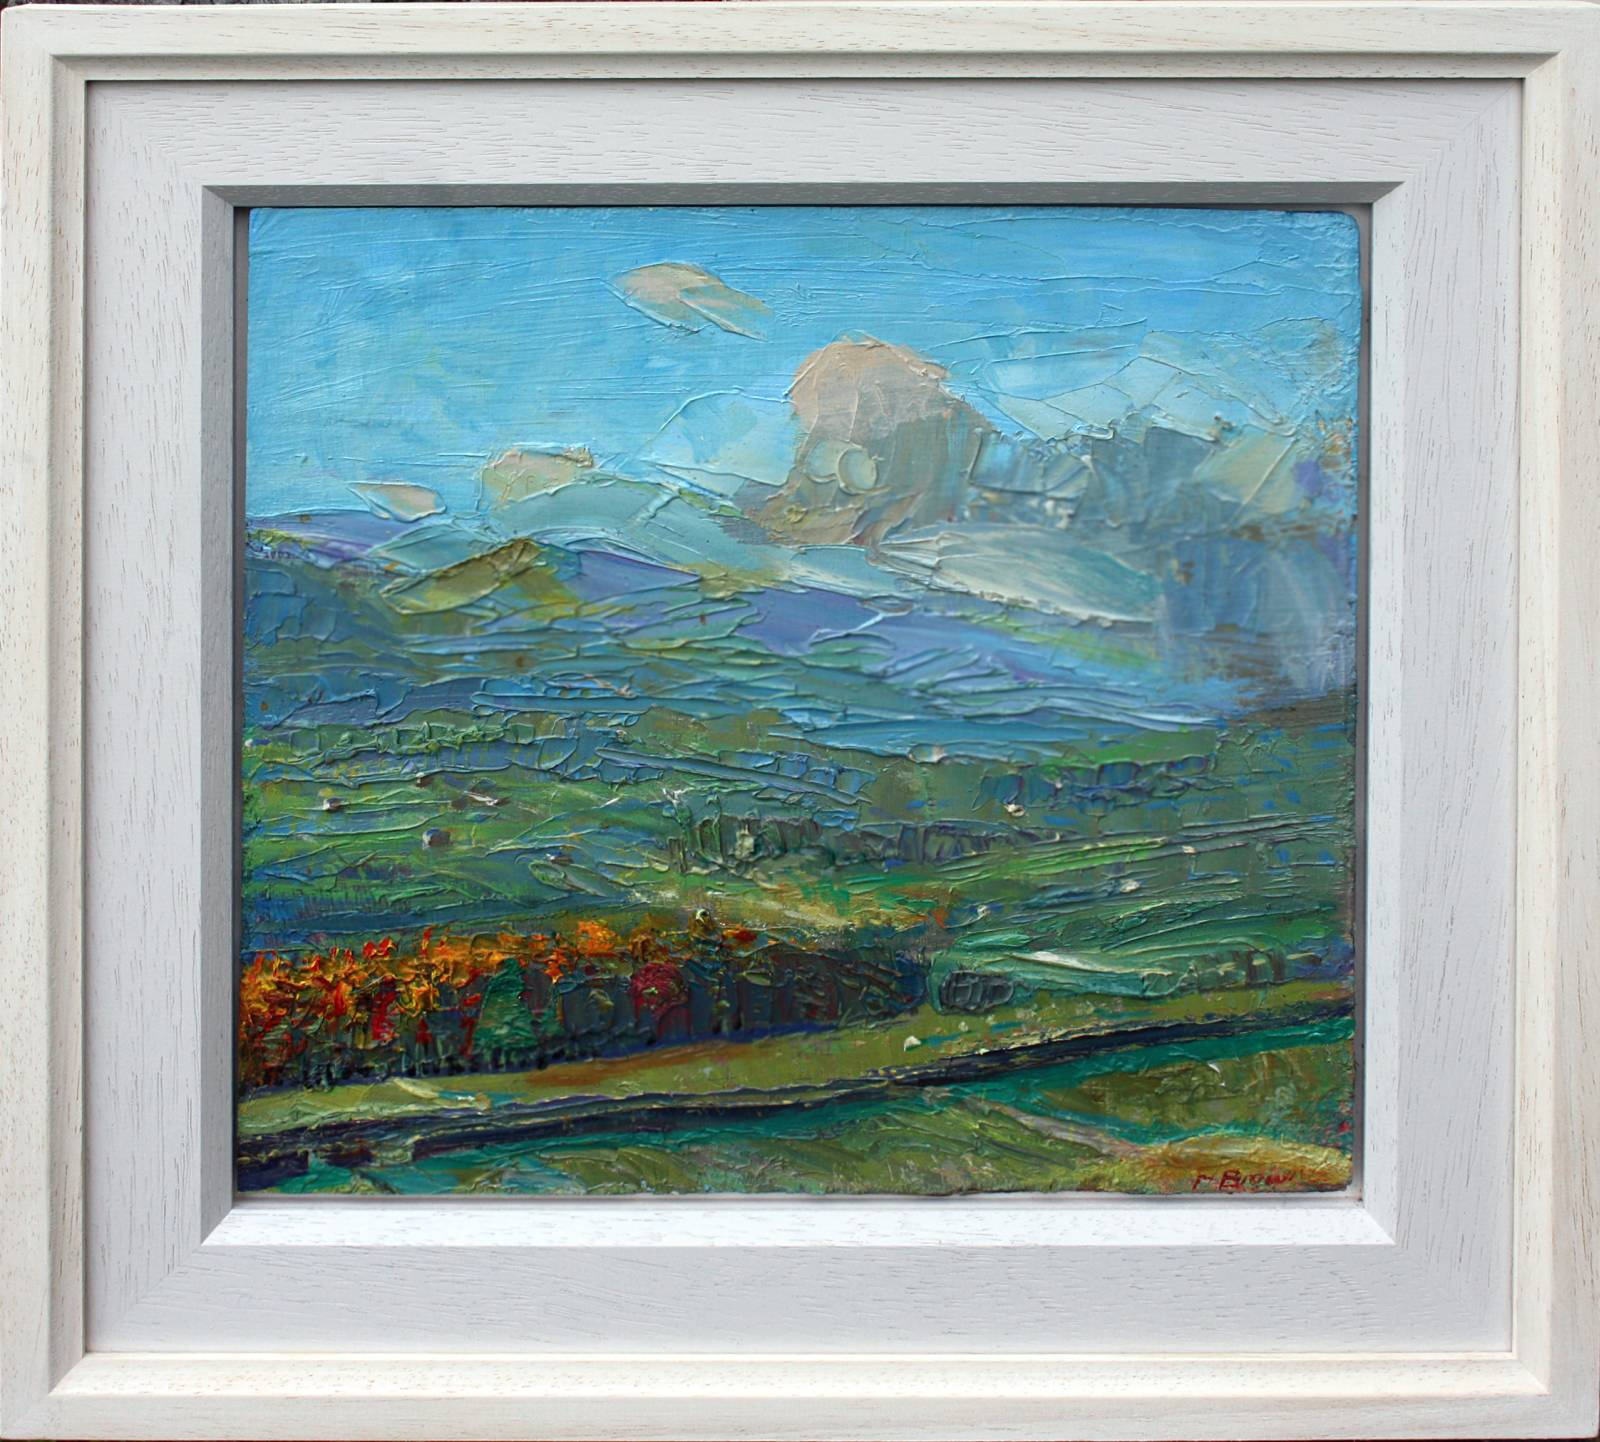 'NOVEMBER DAWN: ASKRIGG LIT UP, WENSLEYDALE'